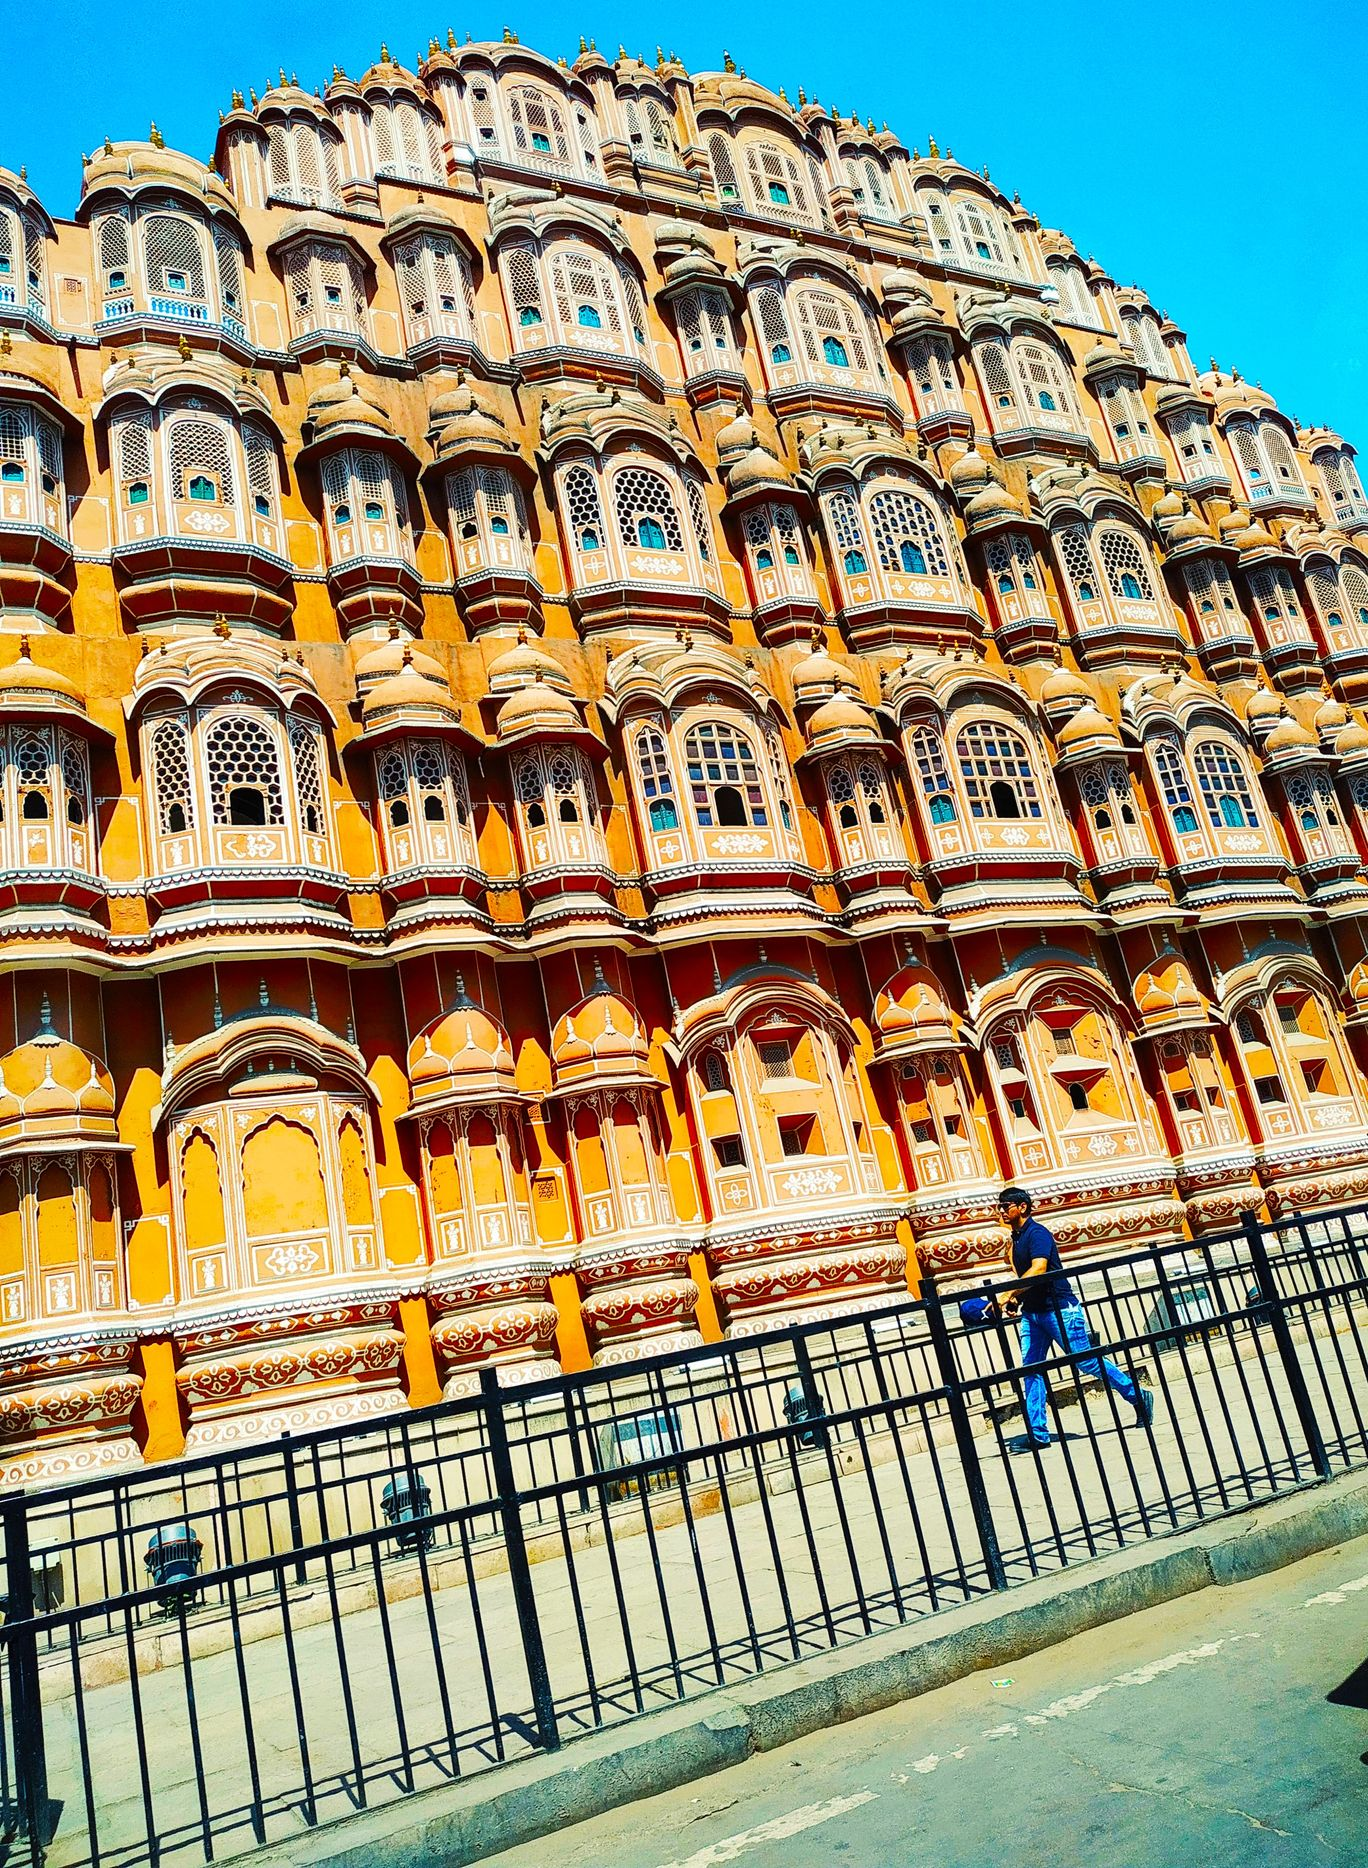 Photo of Jaipur By ⓐⓟⓞⓞⓡⓥⓘ ⓡⓐⓣⓗⓞⓡⓔ